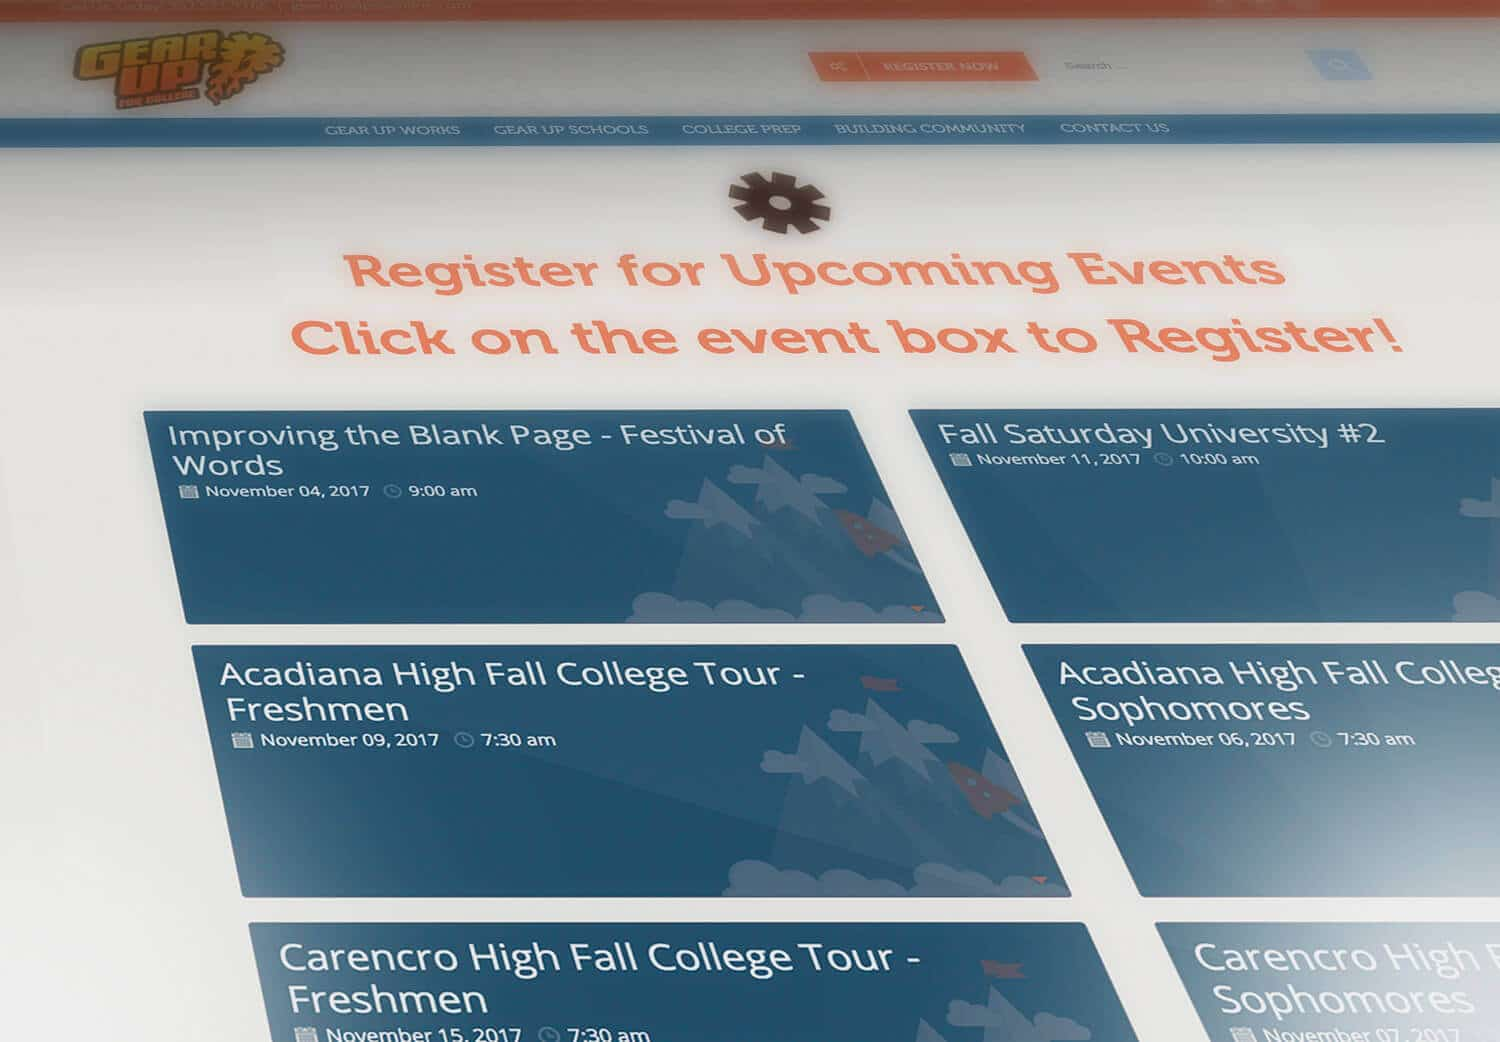 Gear Up Register for Events